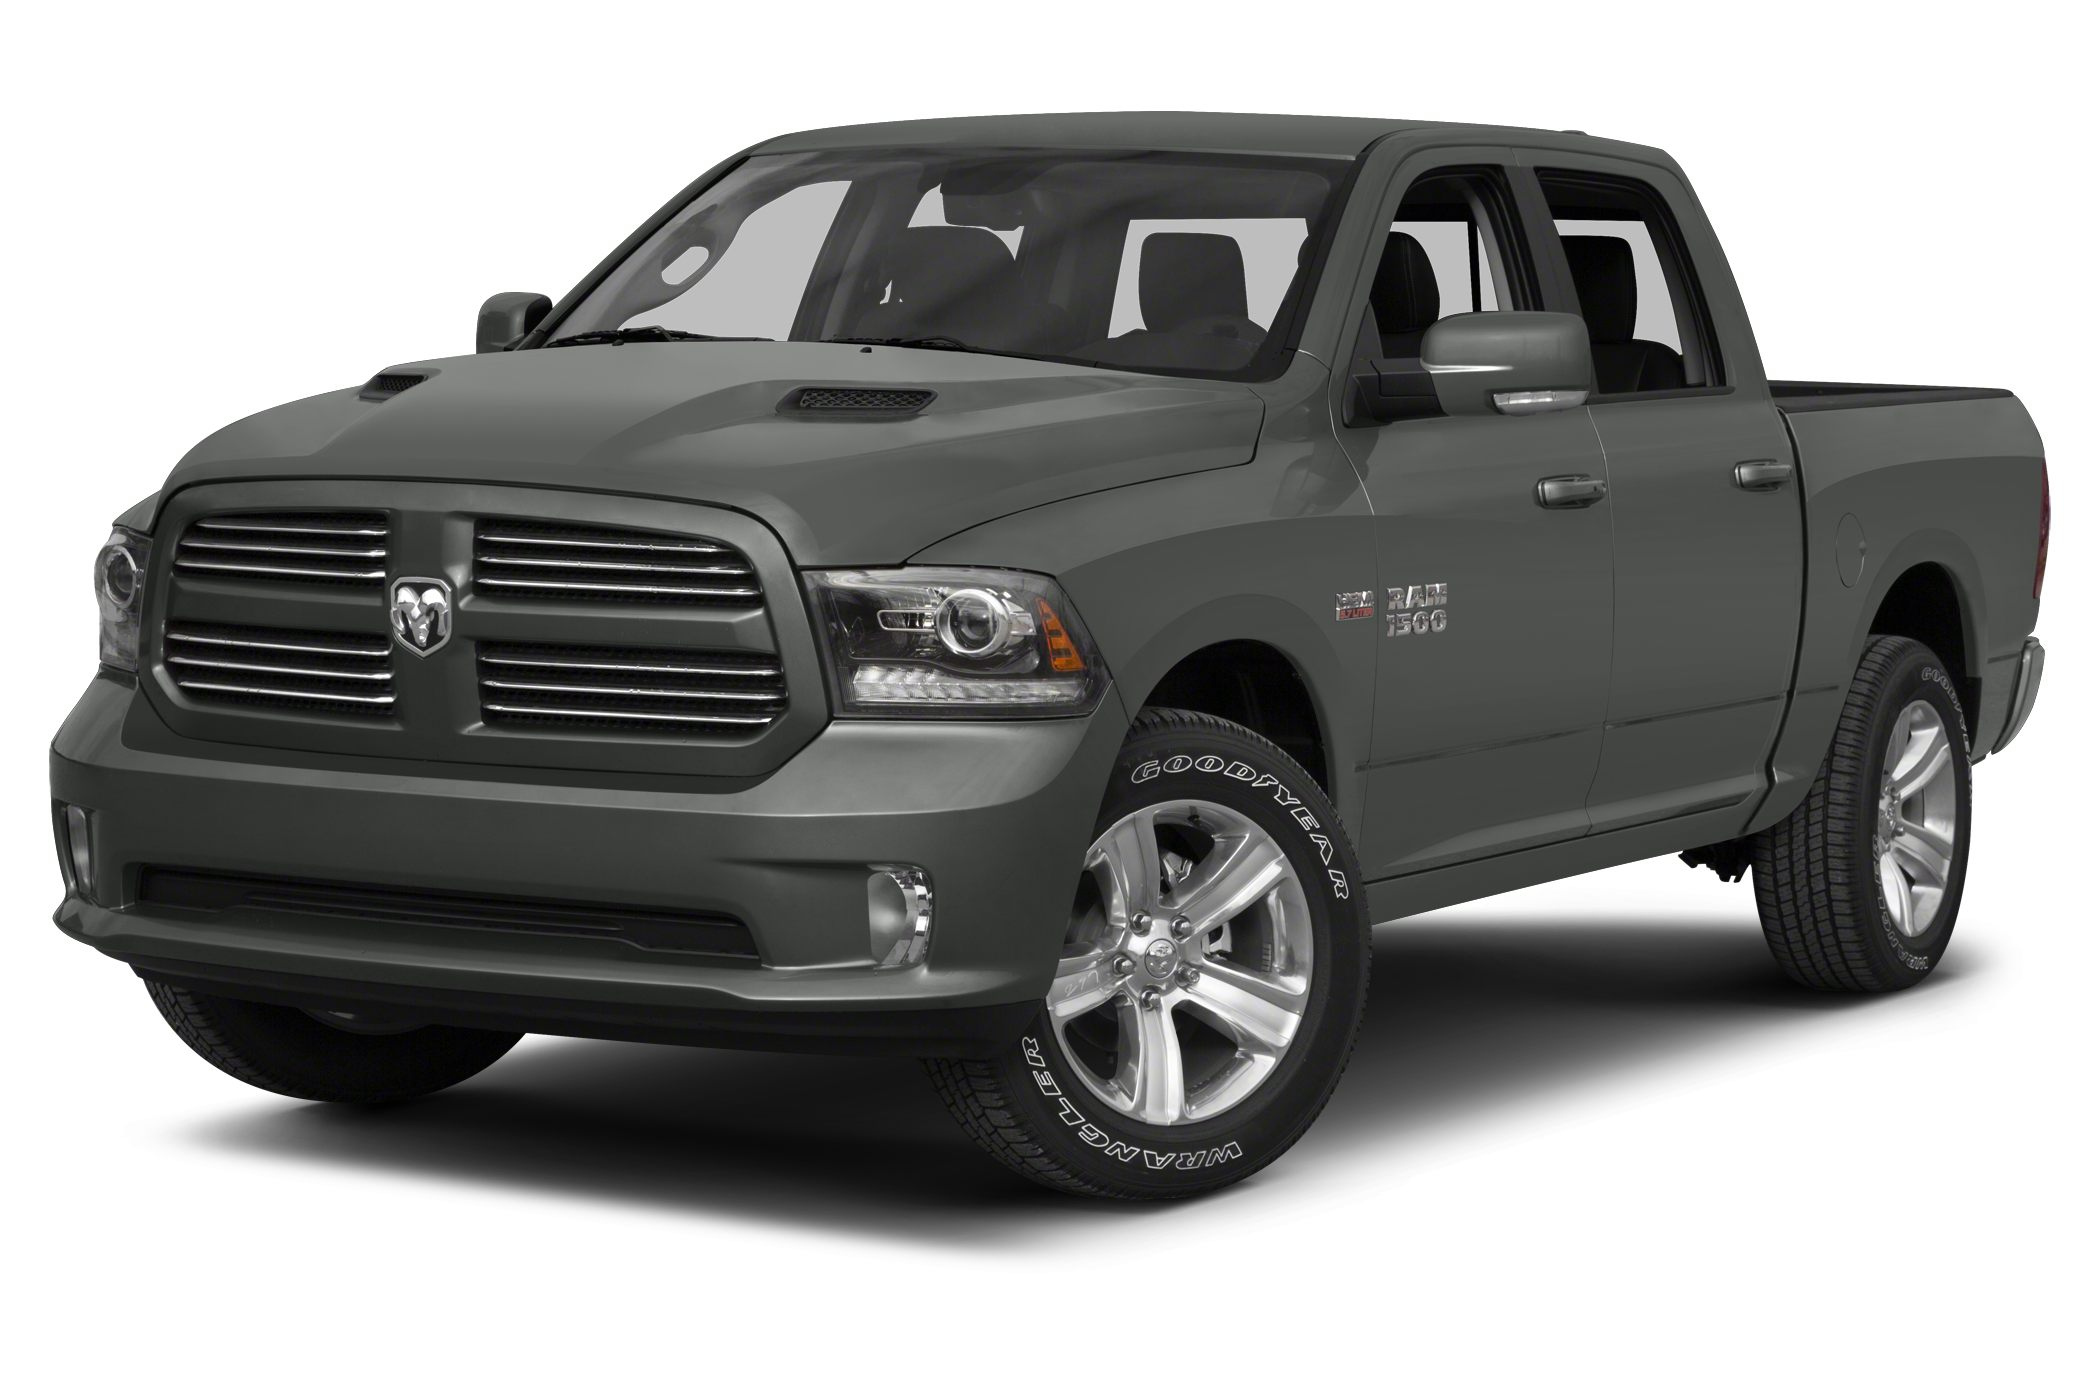 2013 RAM 1500 Laramie Longhorn Edition Crew Cab Pickup for sale in Winnsboro for $39,988 with 18,429 miles